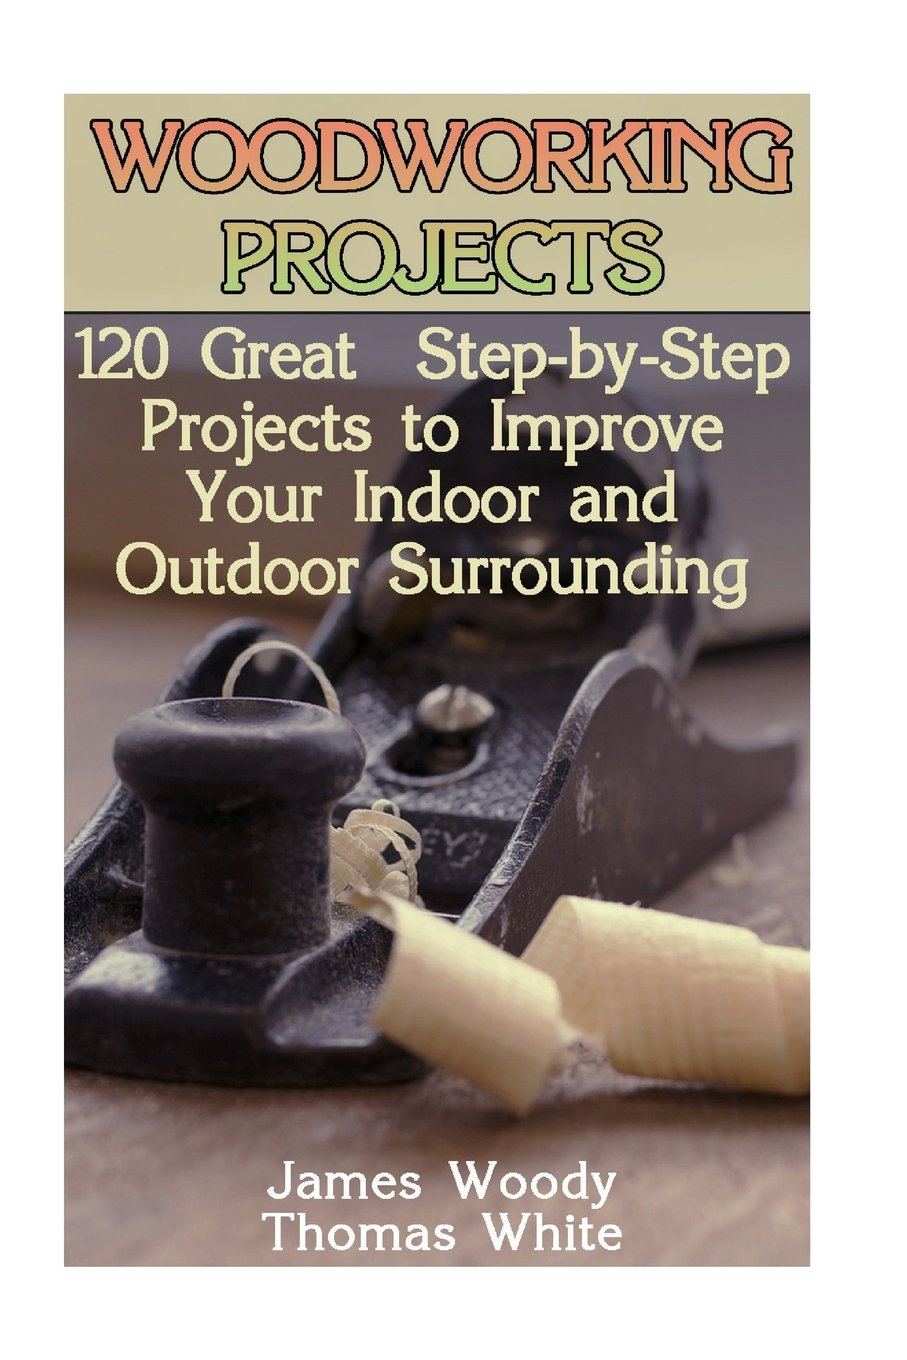 Woodworking Projects: 120 Great Step-by-Step Projects to Improve Your Indoor and Outdoor Surrounding: (Woodworking Plans, Woodworking Project Plans, Woodworking Books)